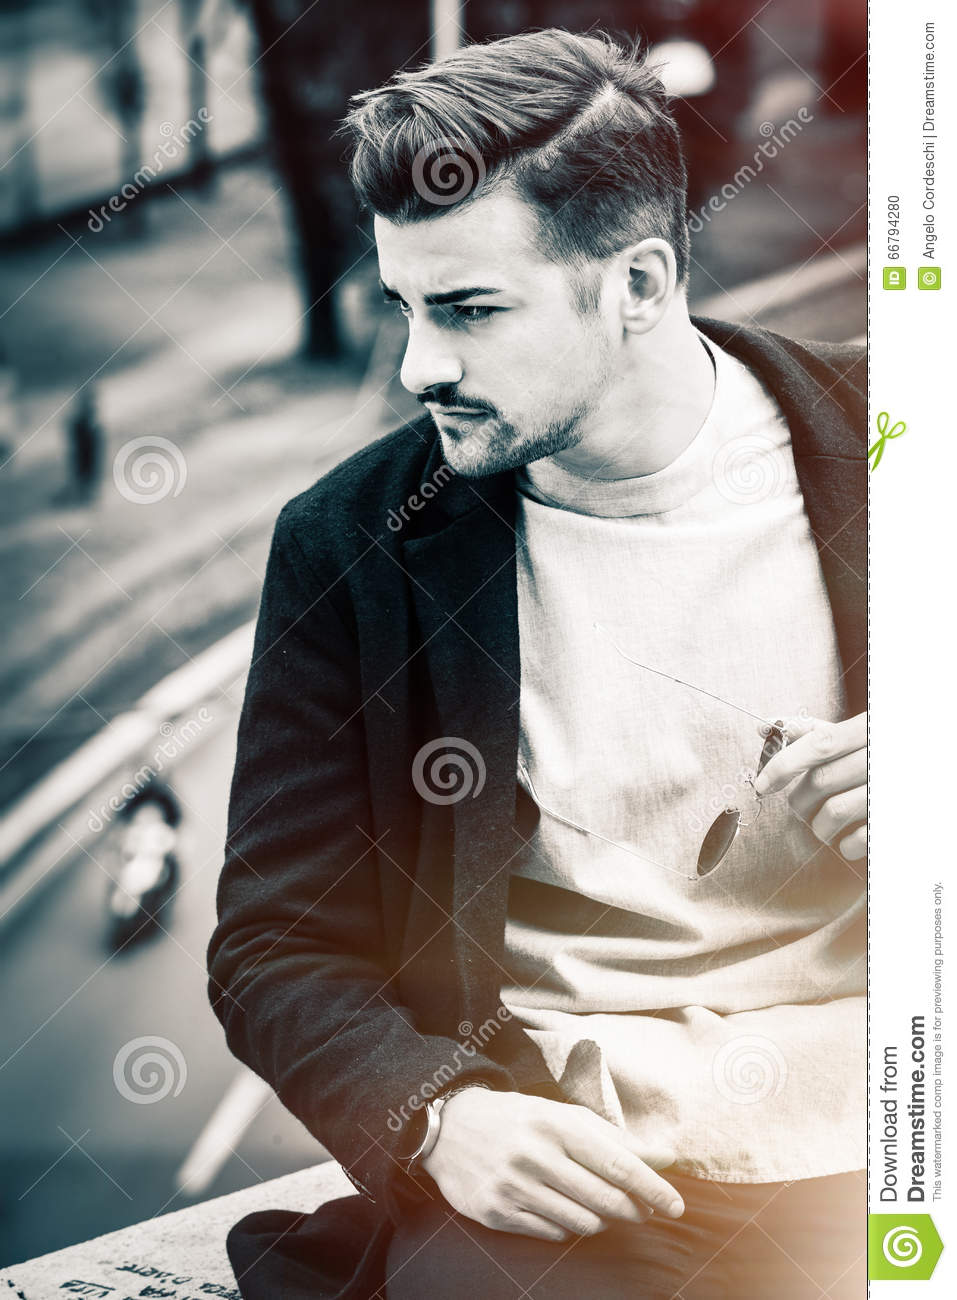 Handsome hairstyle young man city outdoors. Black and white